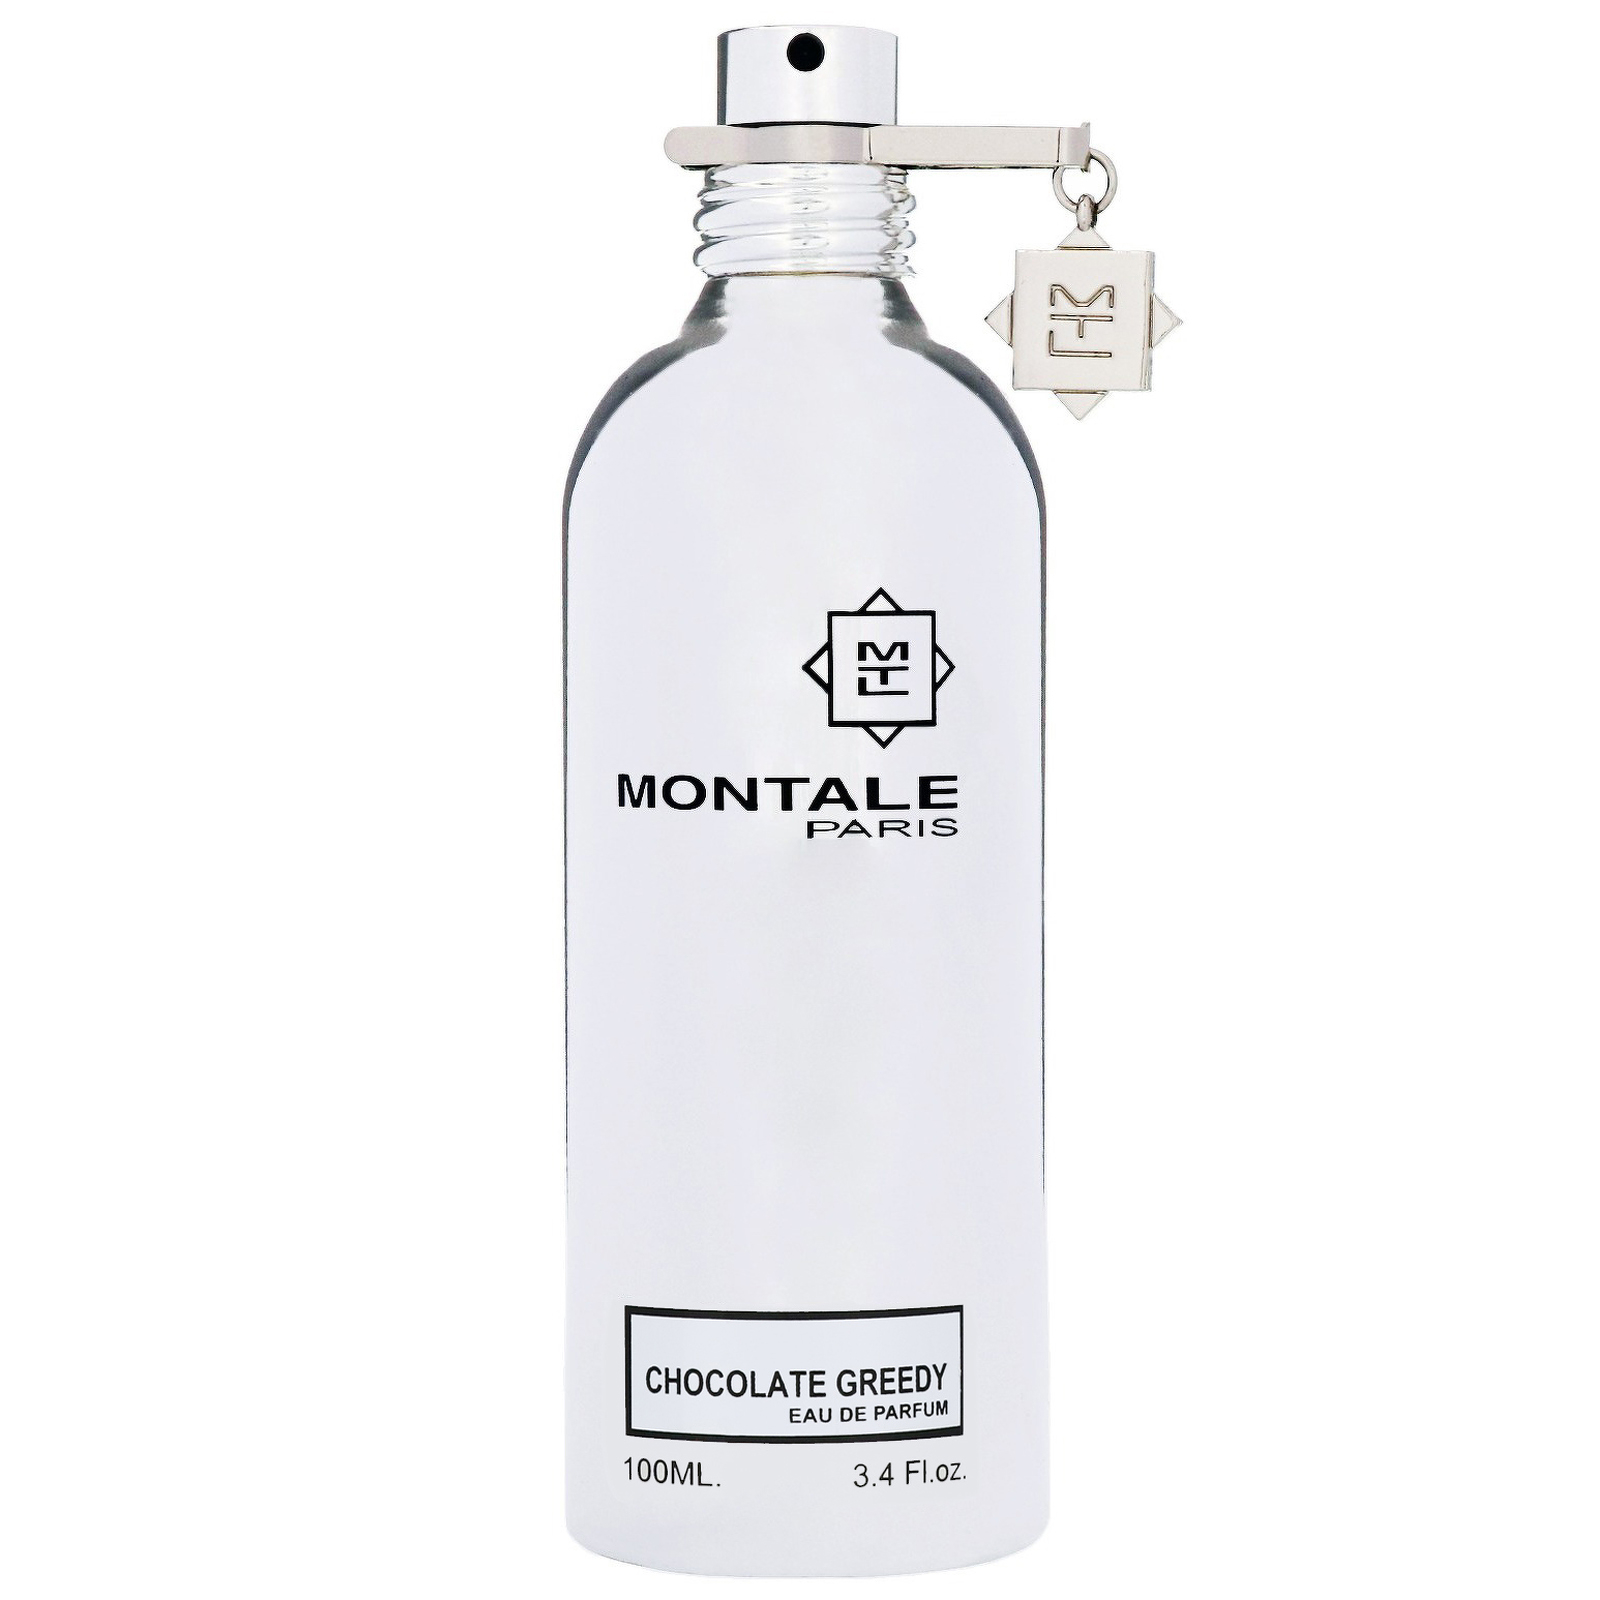 Montale Chocolate Greedy Eau de Parfum Spray 100ml